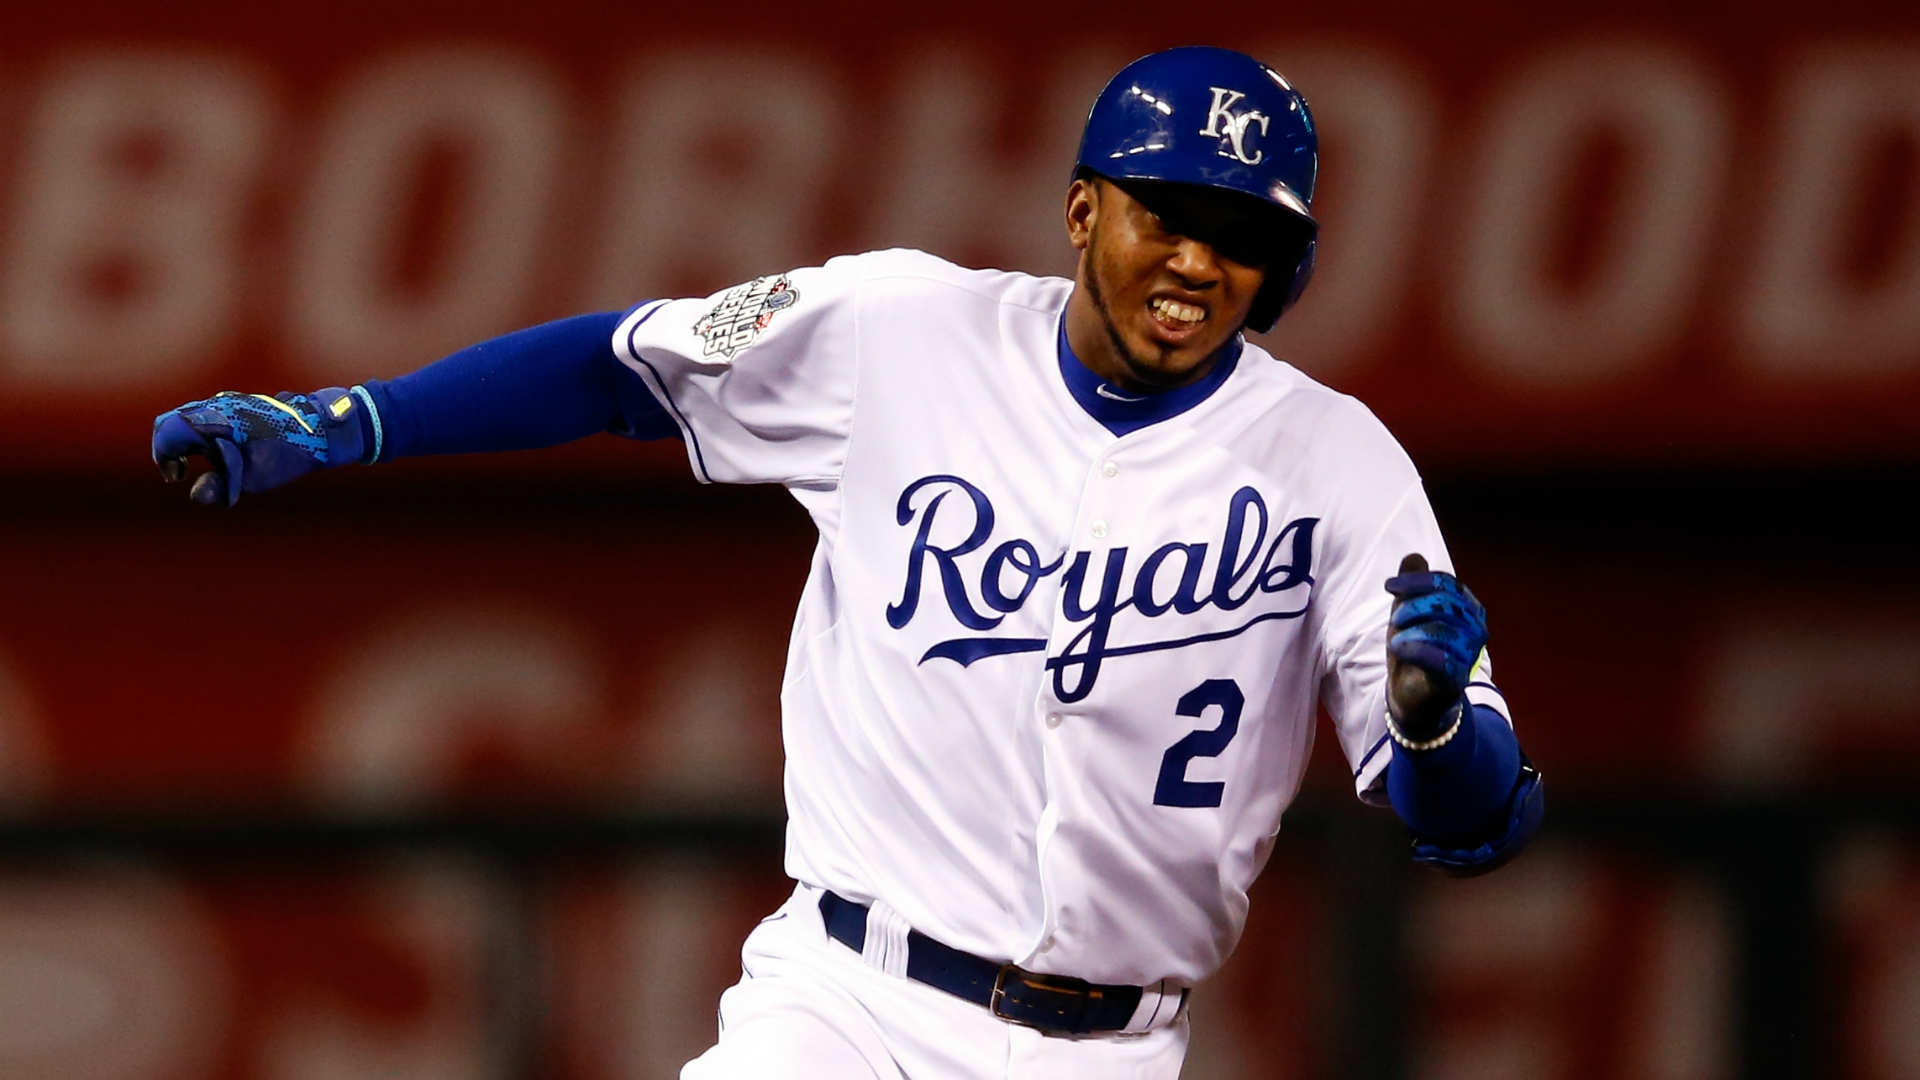 Fan Pays 19K For Alcides Escobar Inside The Park Home Run Ball